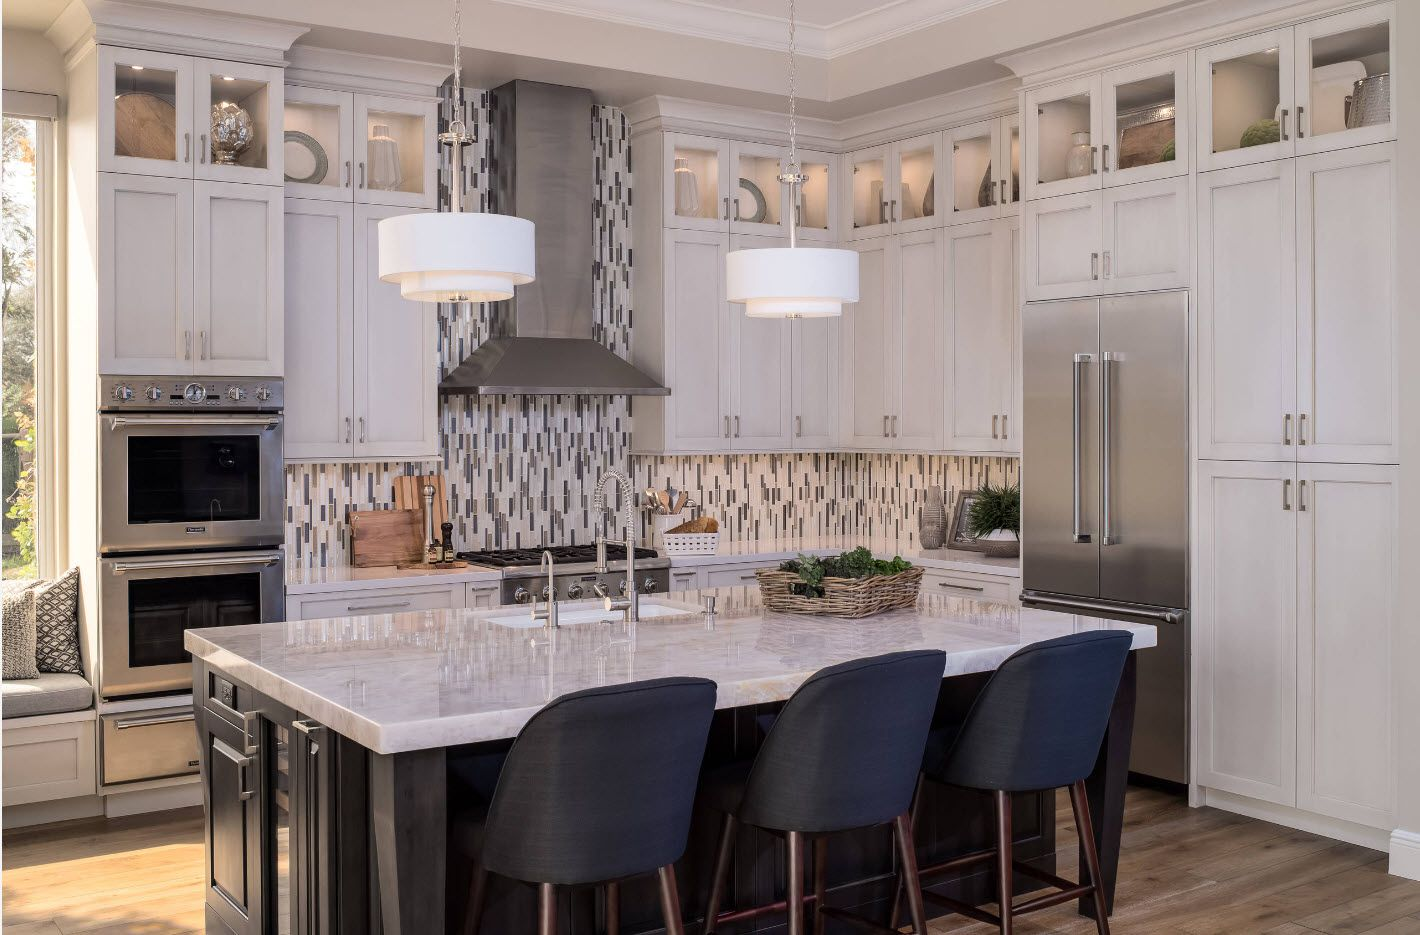 Nice rustic style in the modern large kitchen with fully equipped dining group